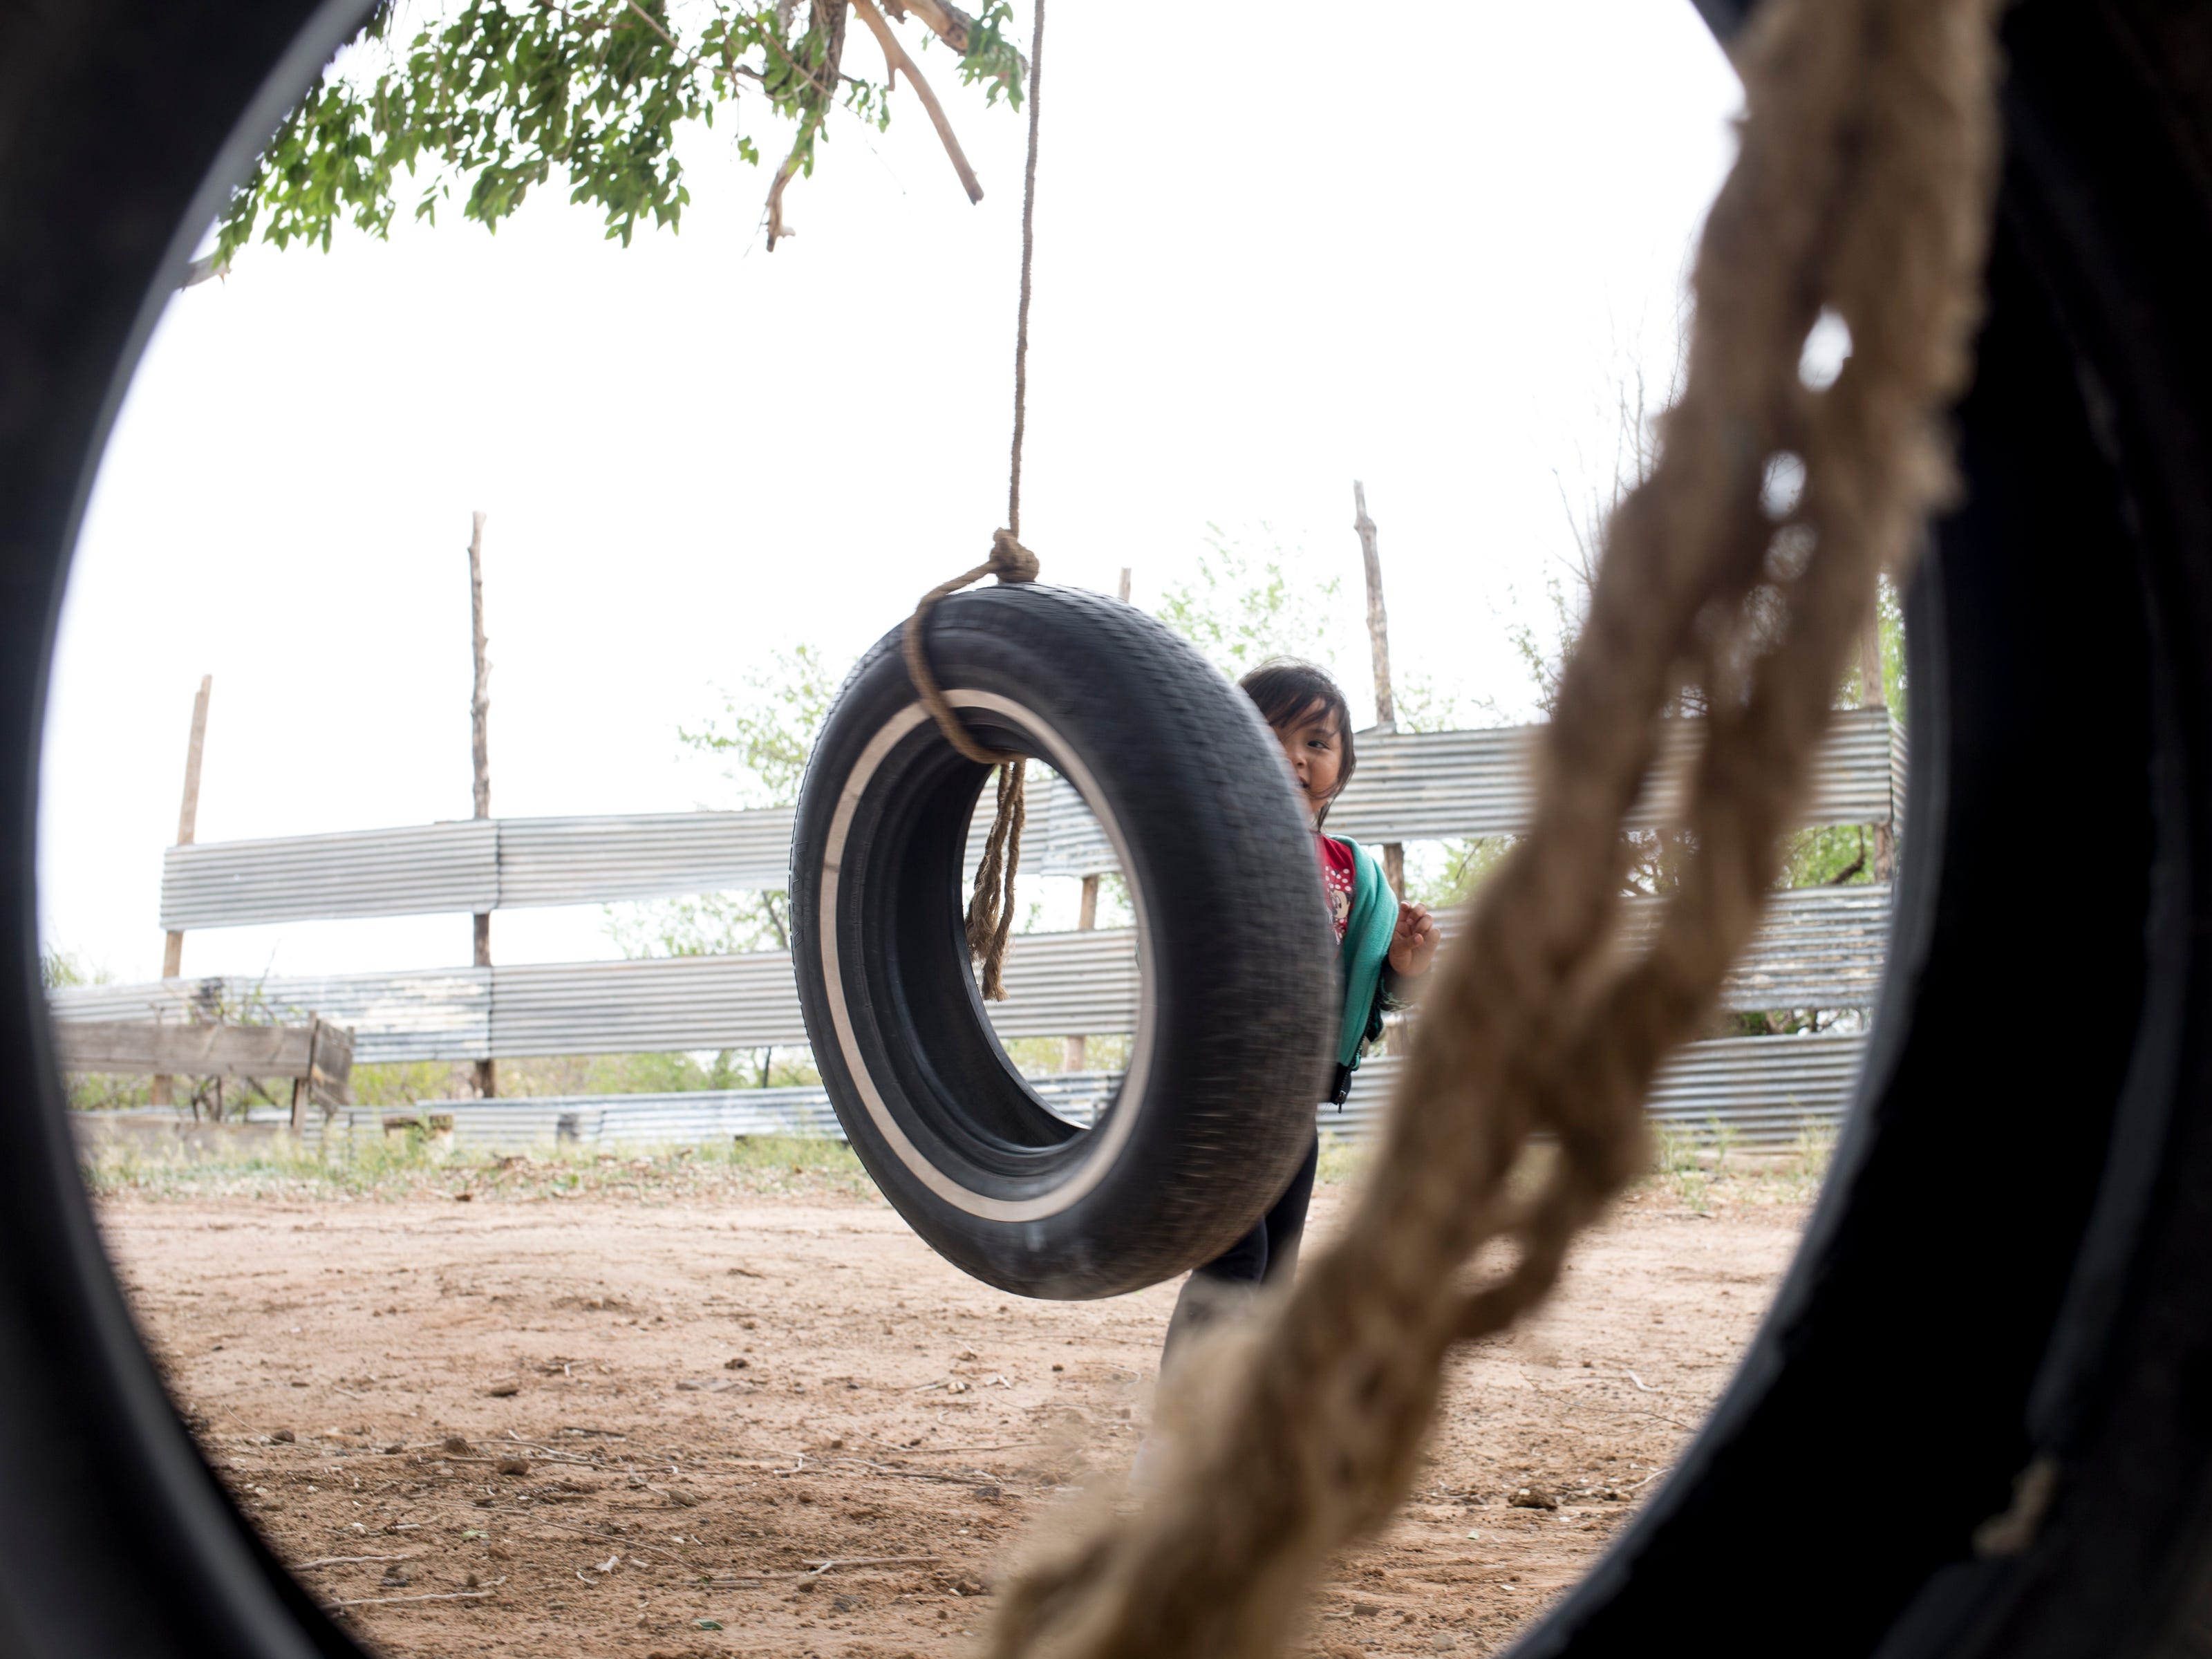 Zara Oliver (great-granddaughter) plays with a tire swing, on the Begaye family farm in the Salt Water Canyon, east of Many Farms, Ariz., on May 16, 2019.